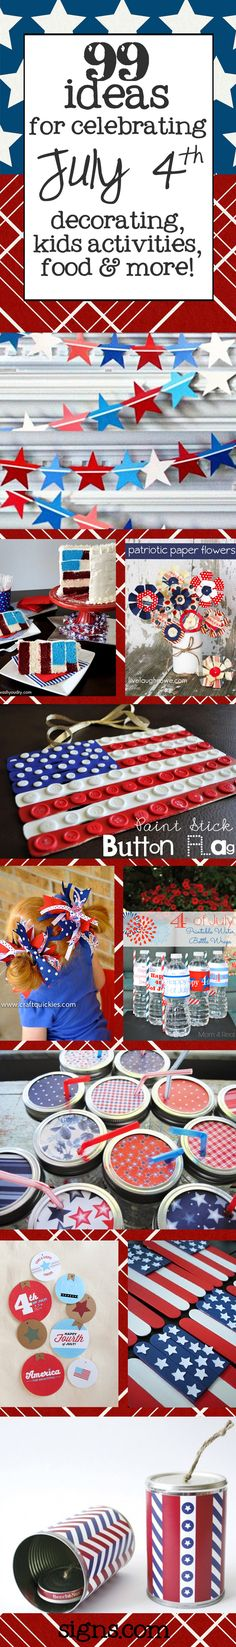 of July Ideas! of July Ideas! of July Ideas! of July Ideas! of July Ideas! of July Ideas! of July Ideas! of July Ideas! of July Ideas! of July Ideas! of July Ideas! of July Ideas! Patriotic Party, Patriotic Crafts, July Crafts, Holiday Crafts, Holiday Fun, 4th Of July Celebration, 4th Of July Party, Fourth Of July, Activities For Kids